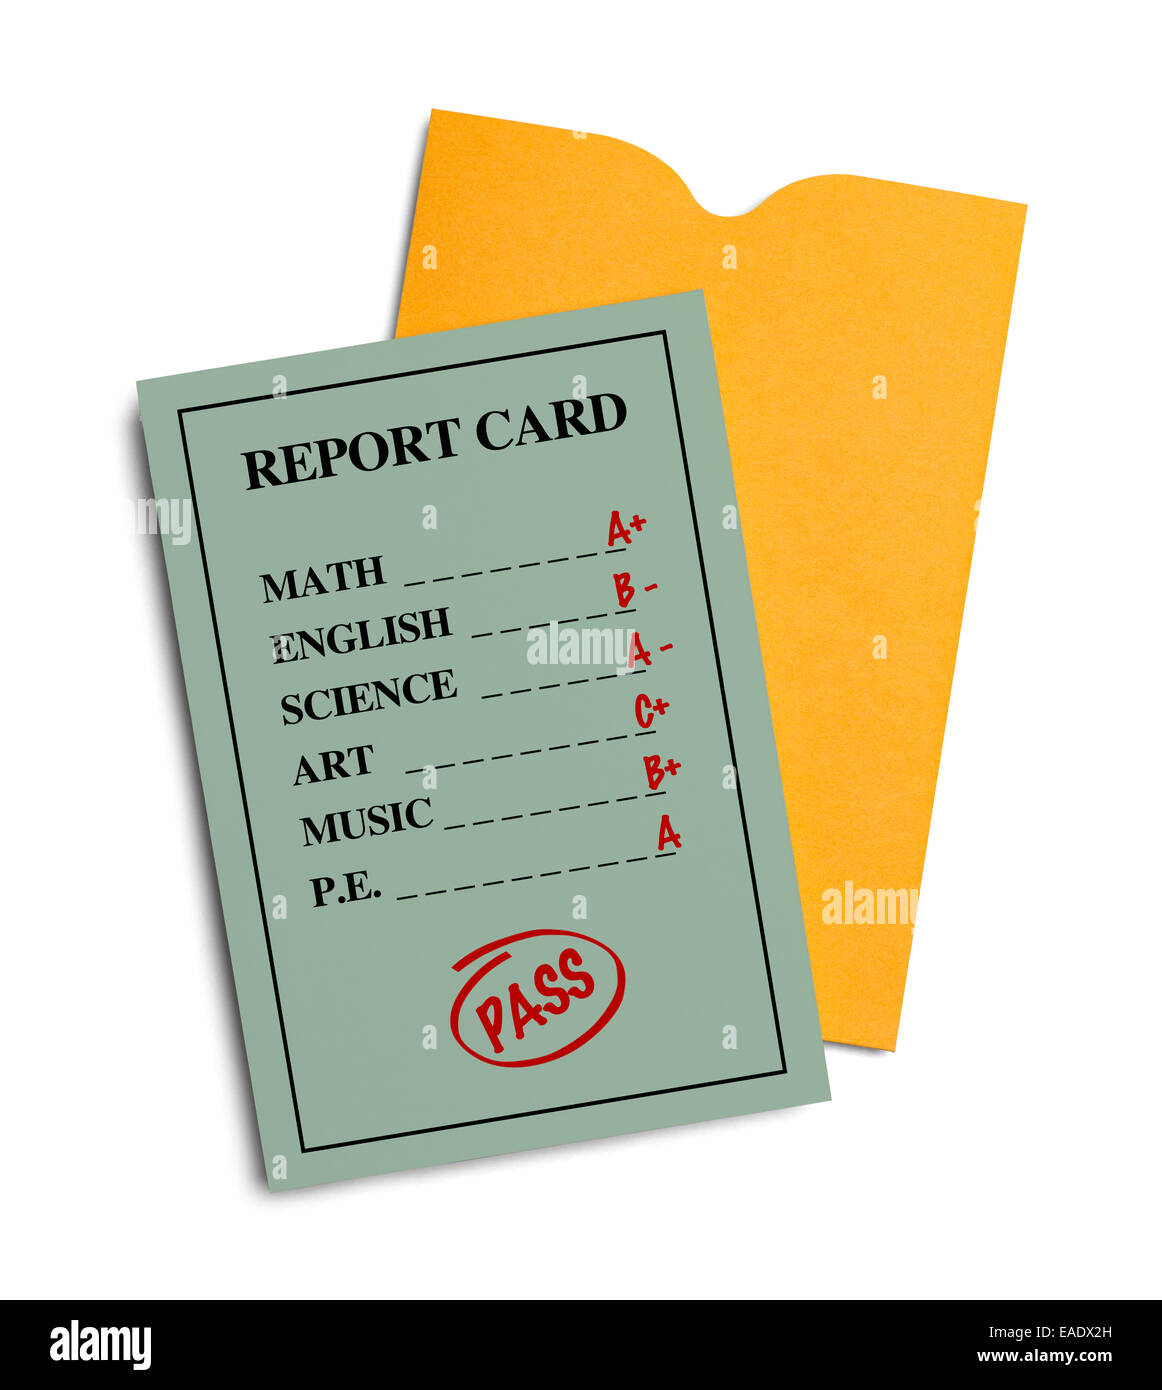 New Green Report Card With Yellow Envelope Isolated on White Background. - Stock Image